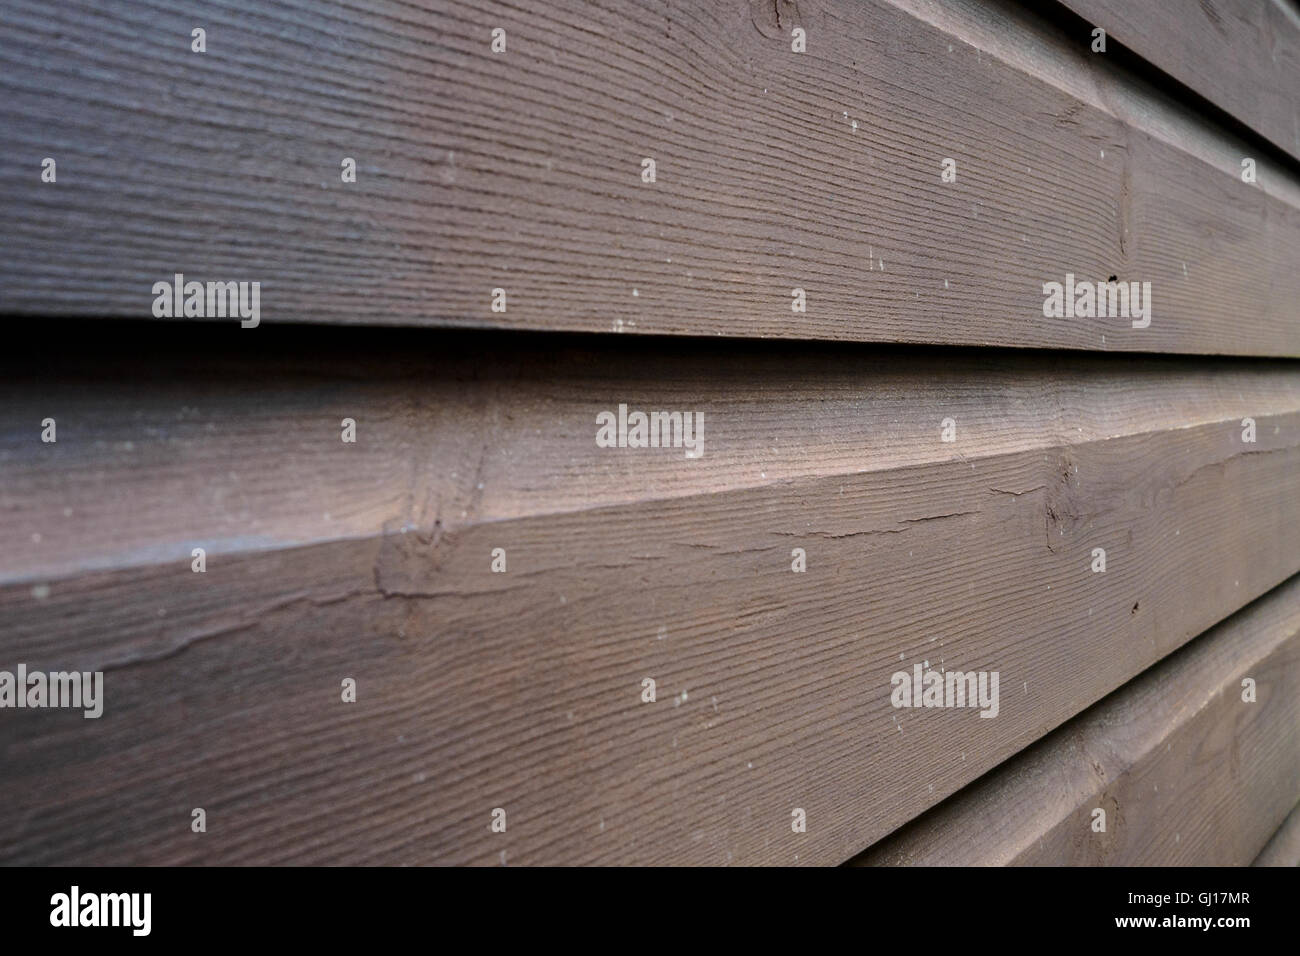 Angled view of wooden panelled wall - Stock Image